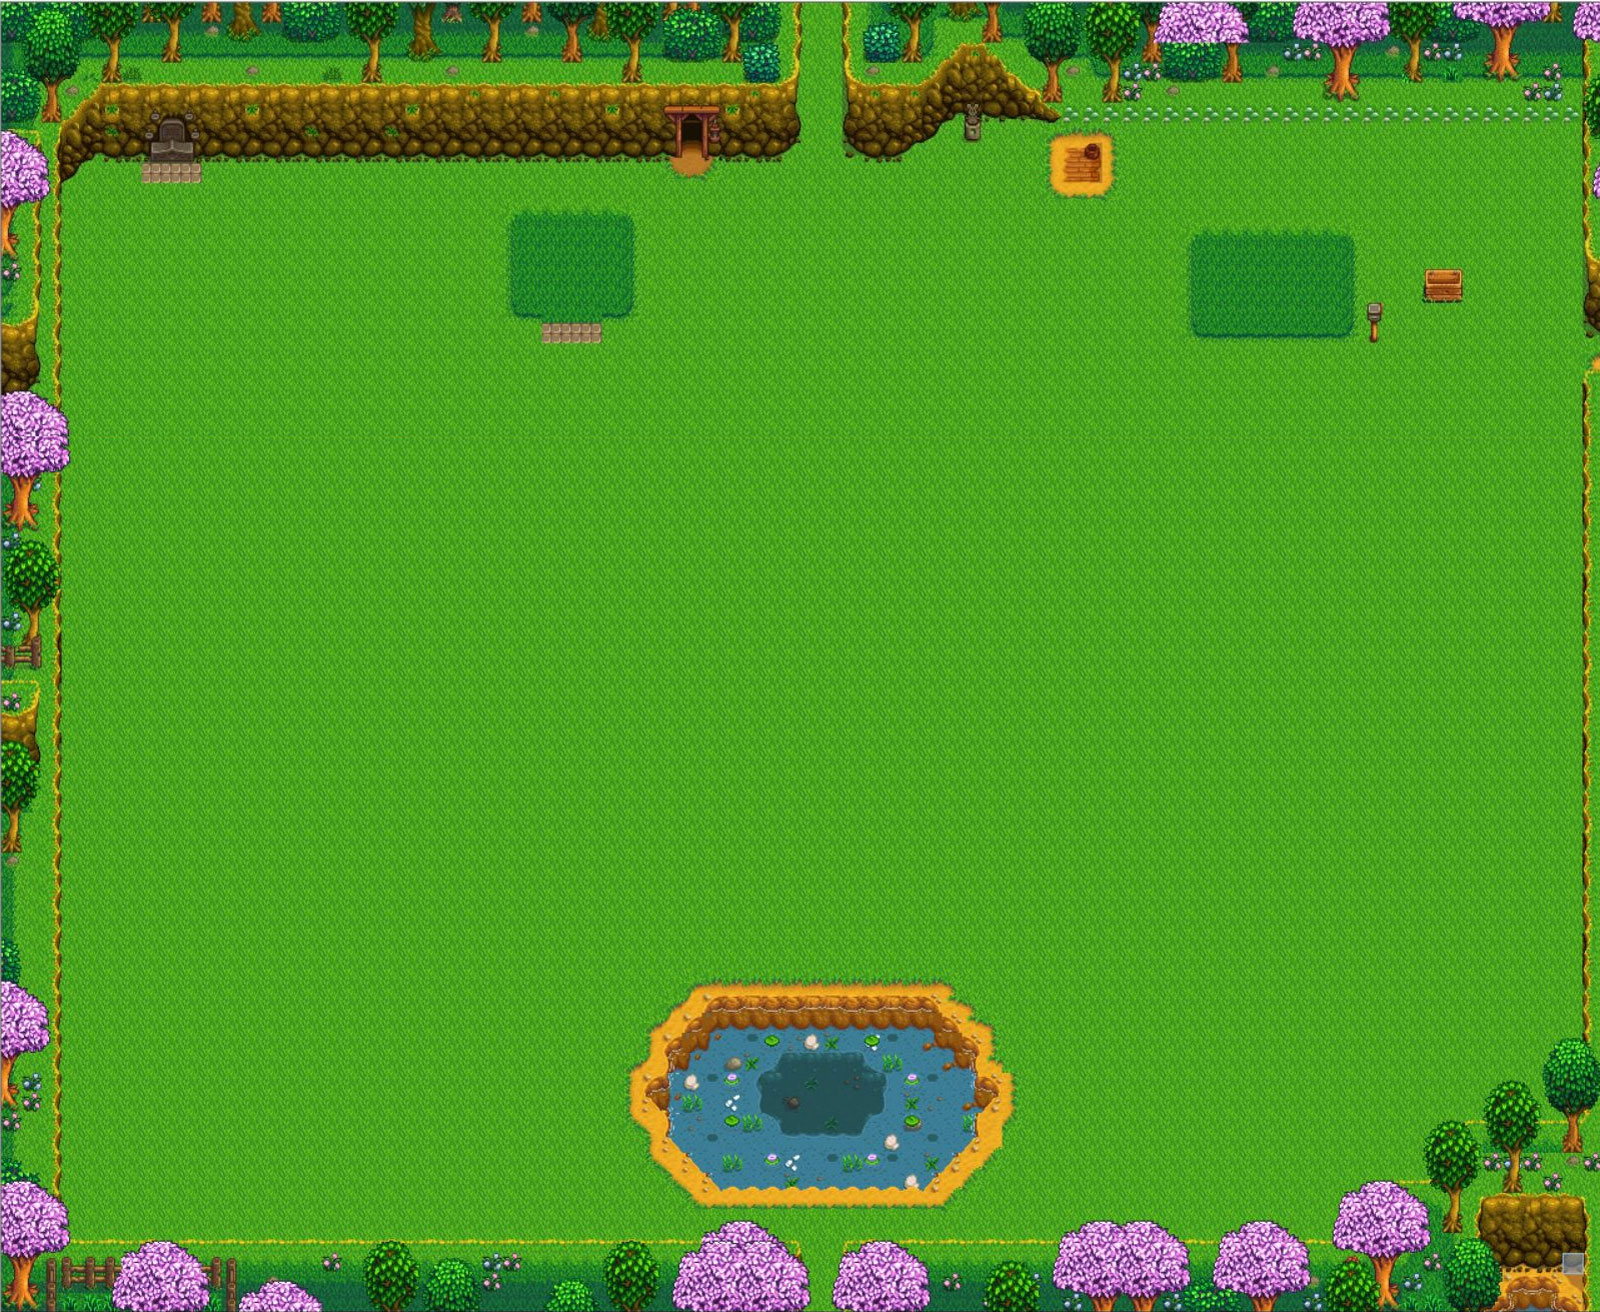 Food farming mods for stardew valley green farm mod for stardew valley forumfinder Images